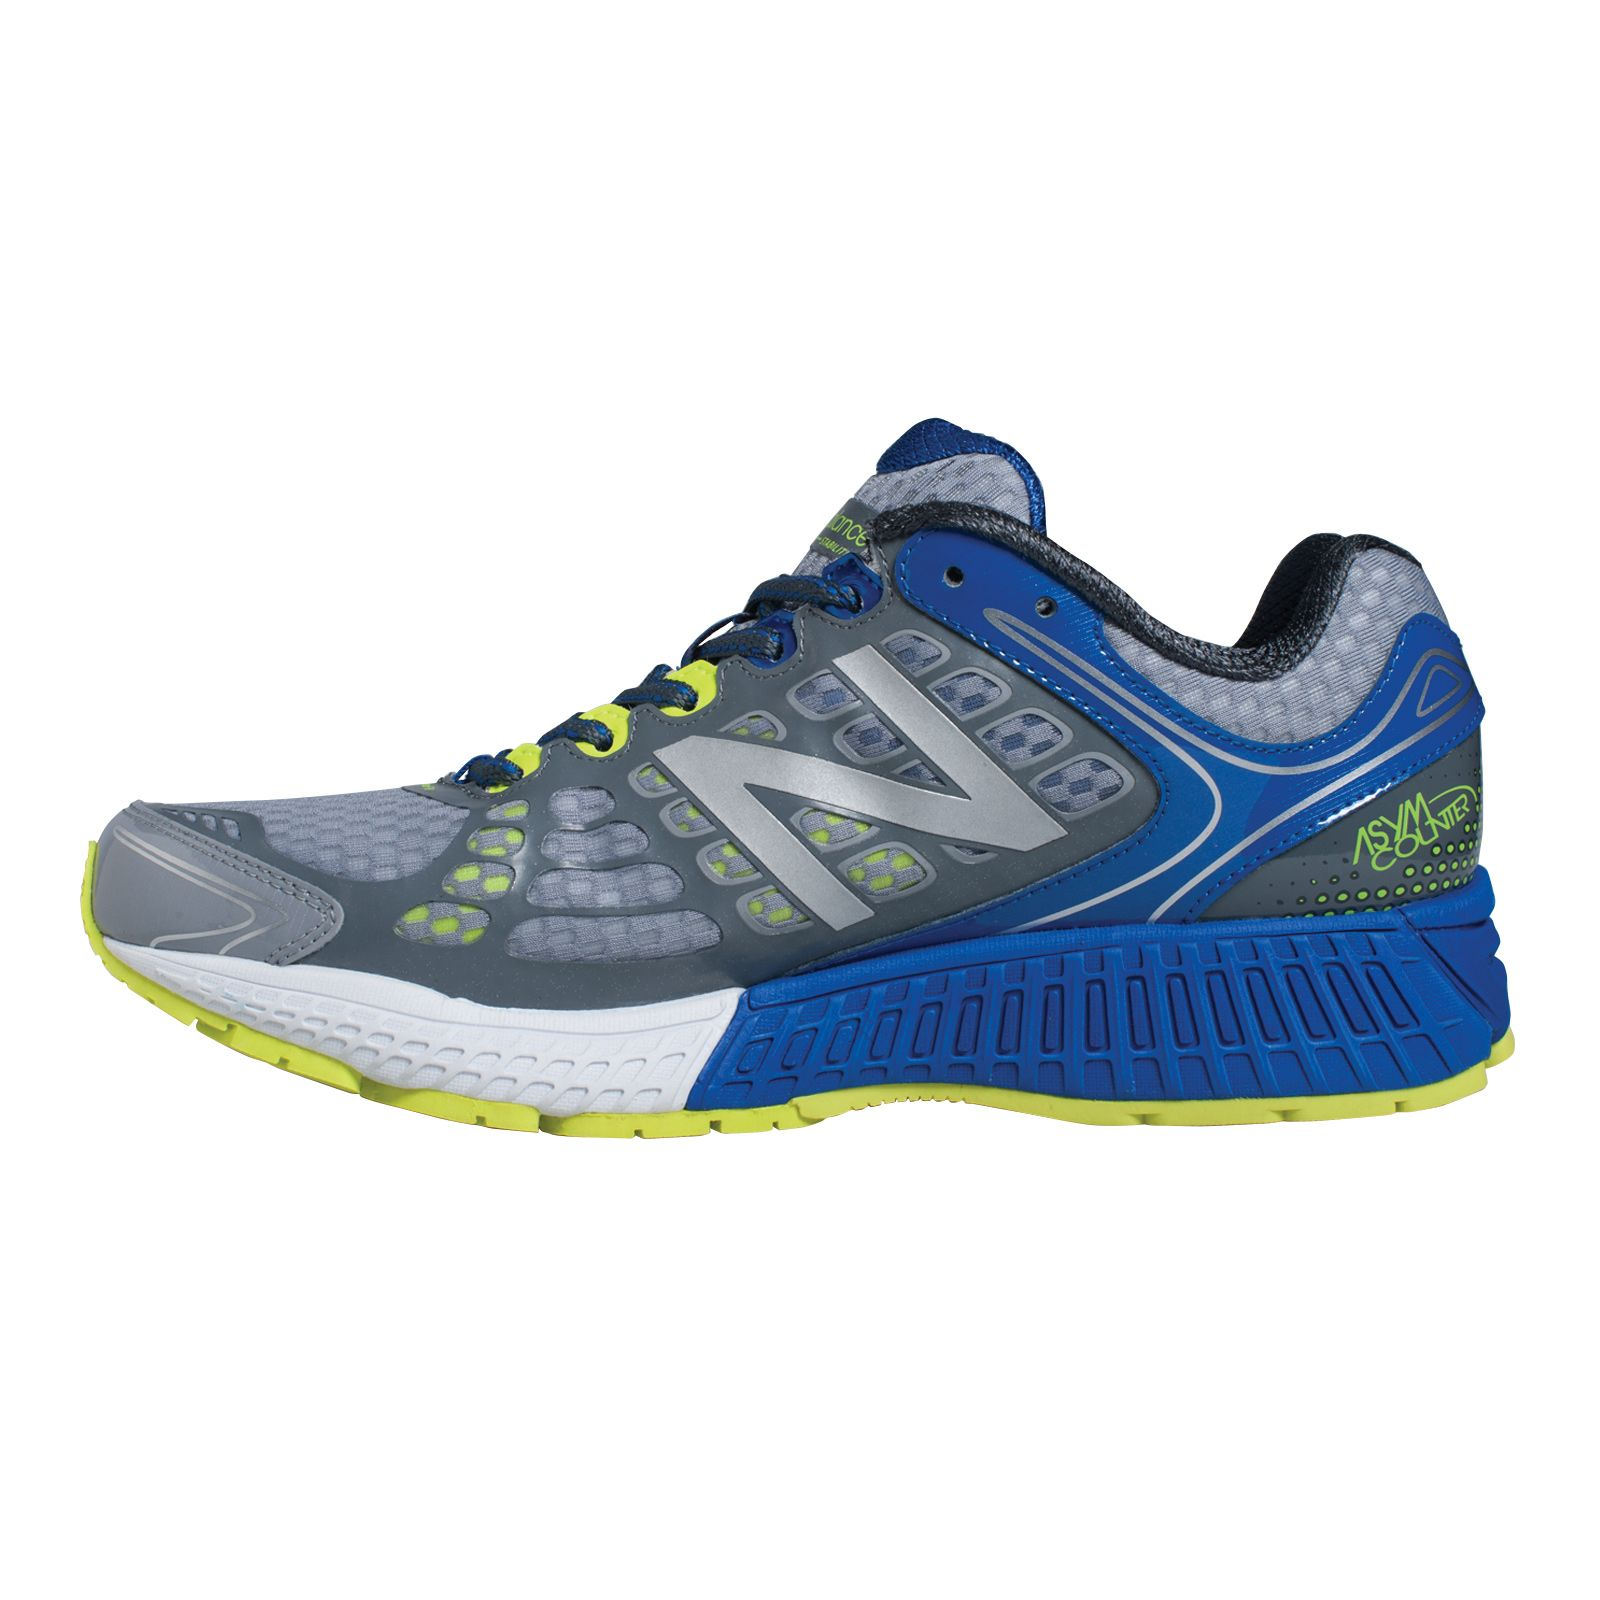 New Balance Mens V Stability Running Shoes Review